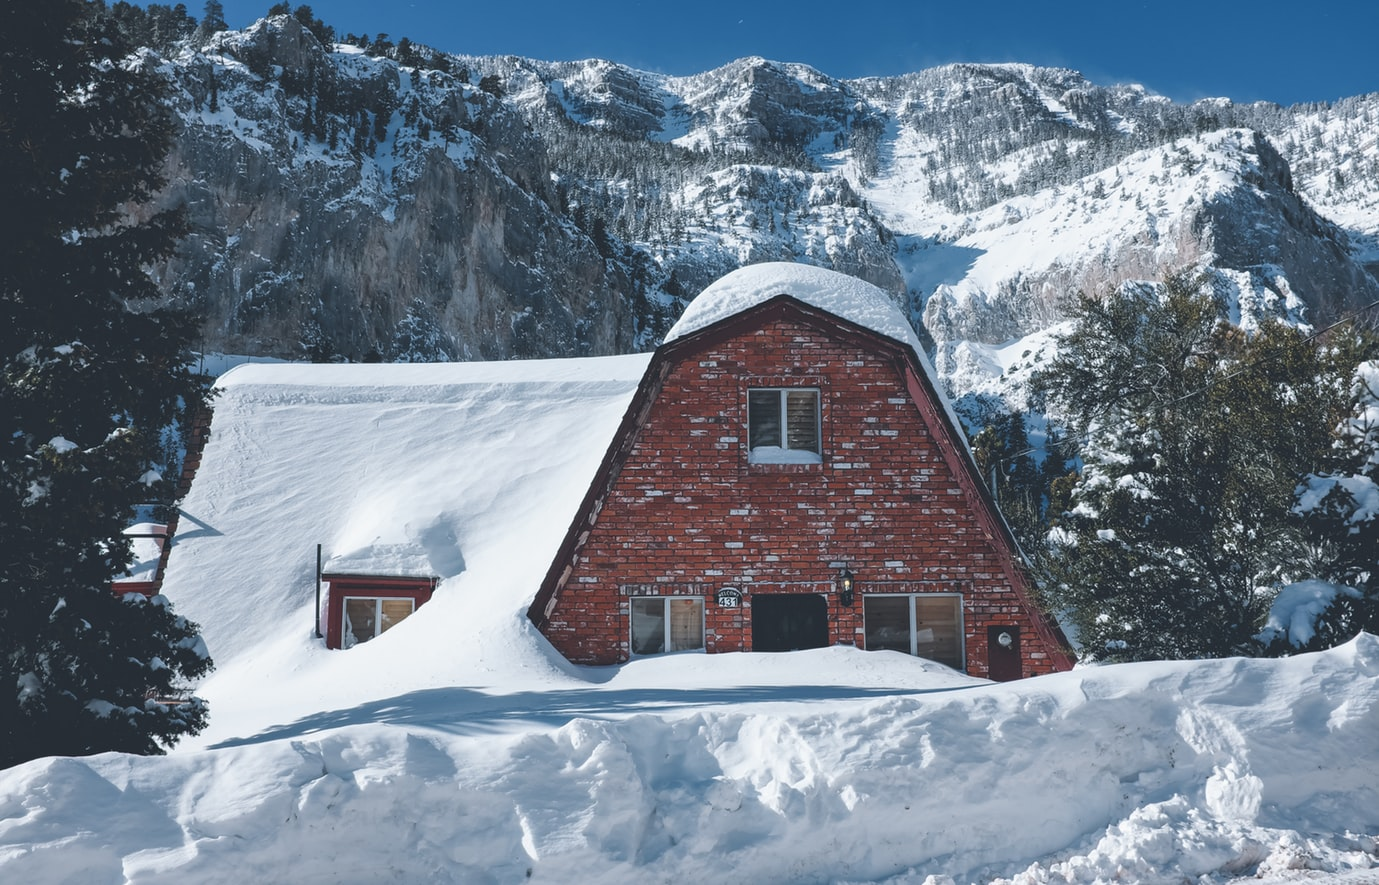 A house covered in snow